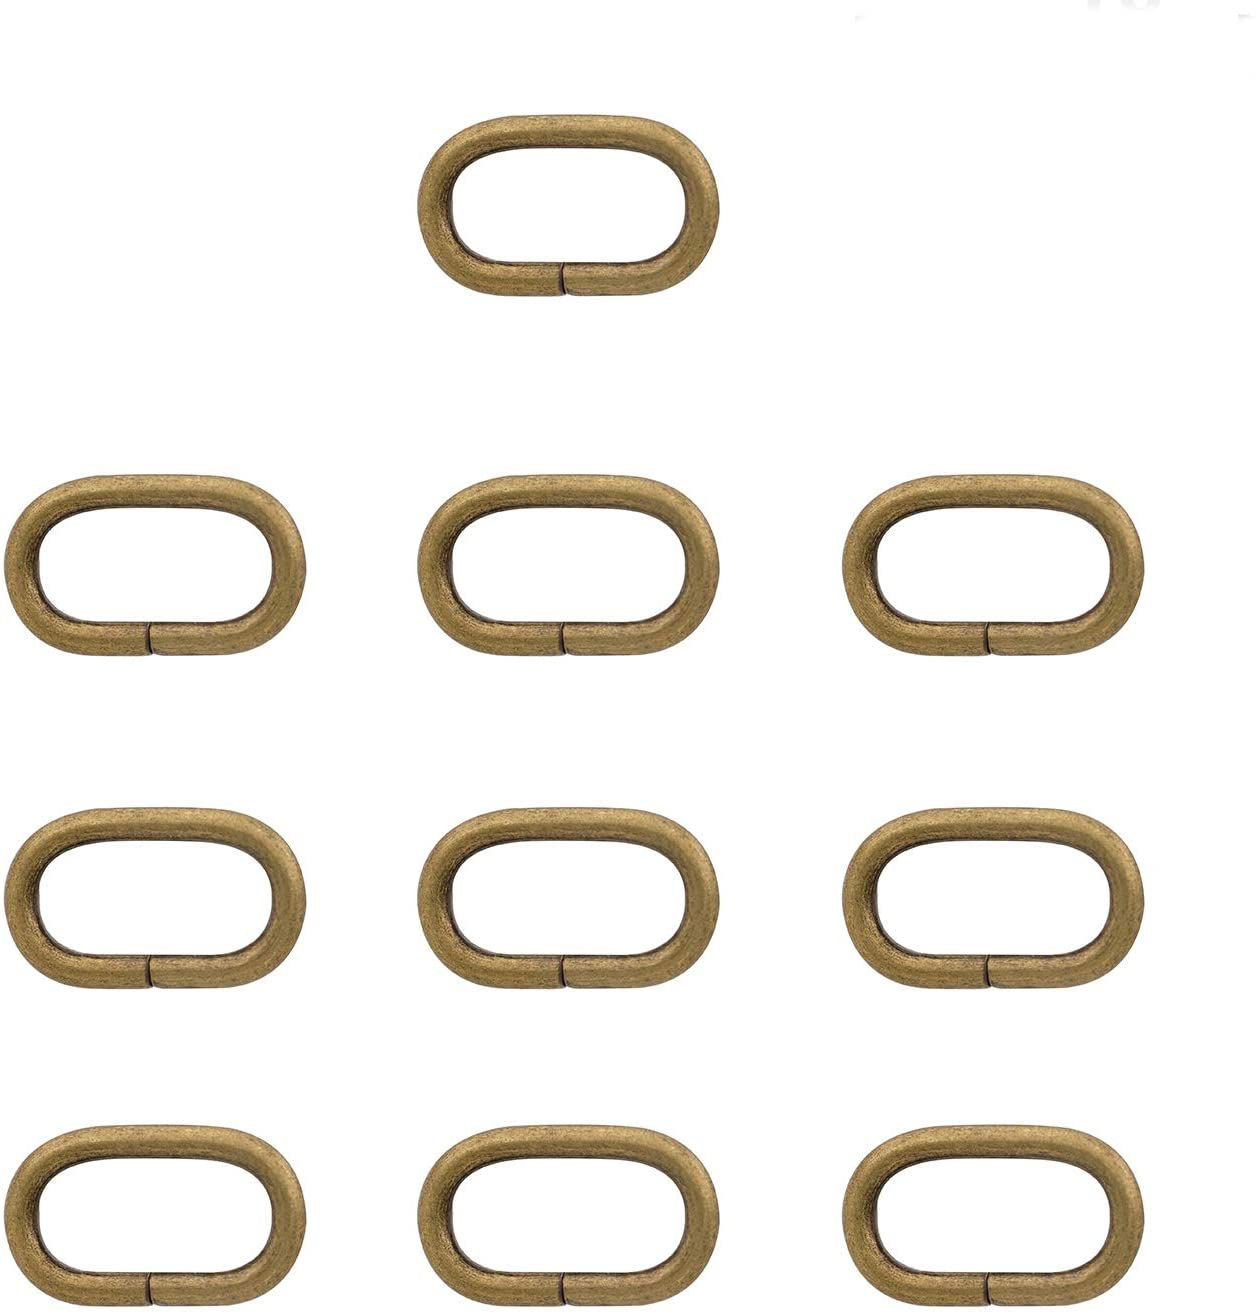 BIKICOCO 1'' Metal Oval Ring Oval Loops Non Welded for Leather Purse Bags, Handbag Straps, Bronze - Pack of 10